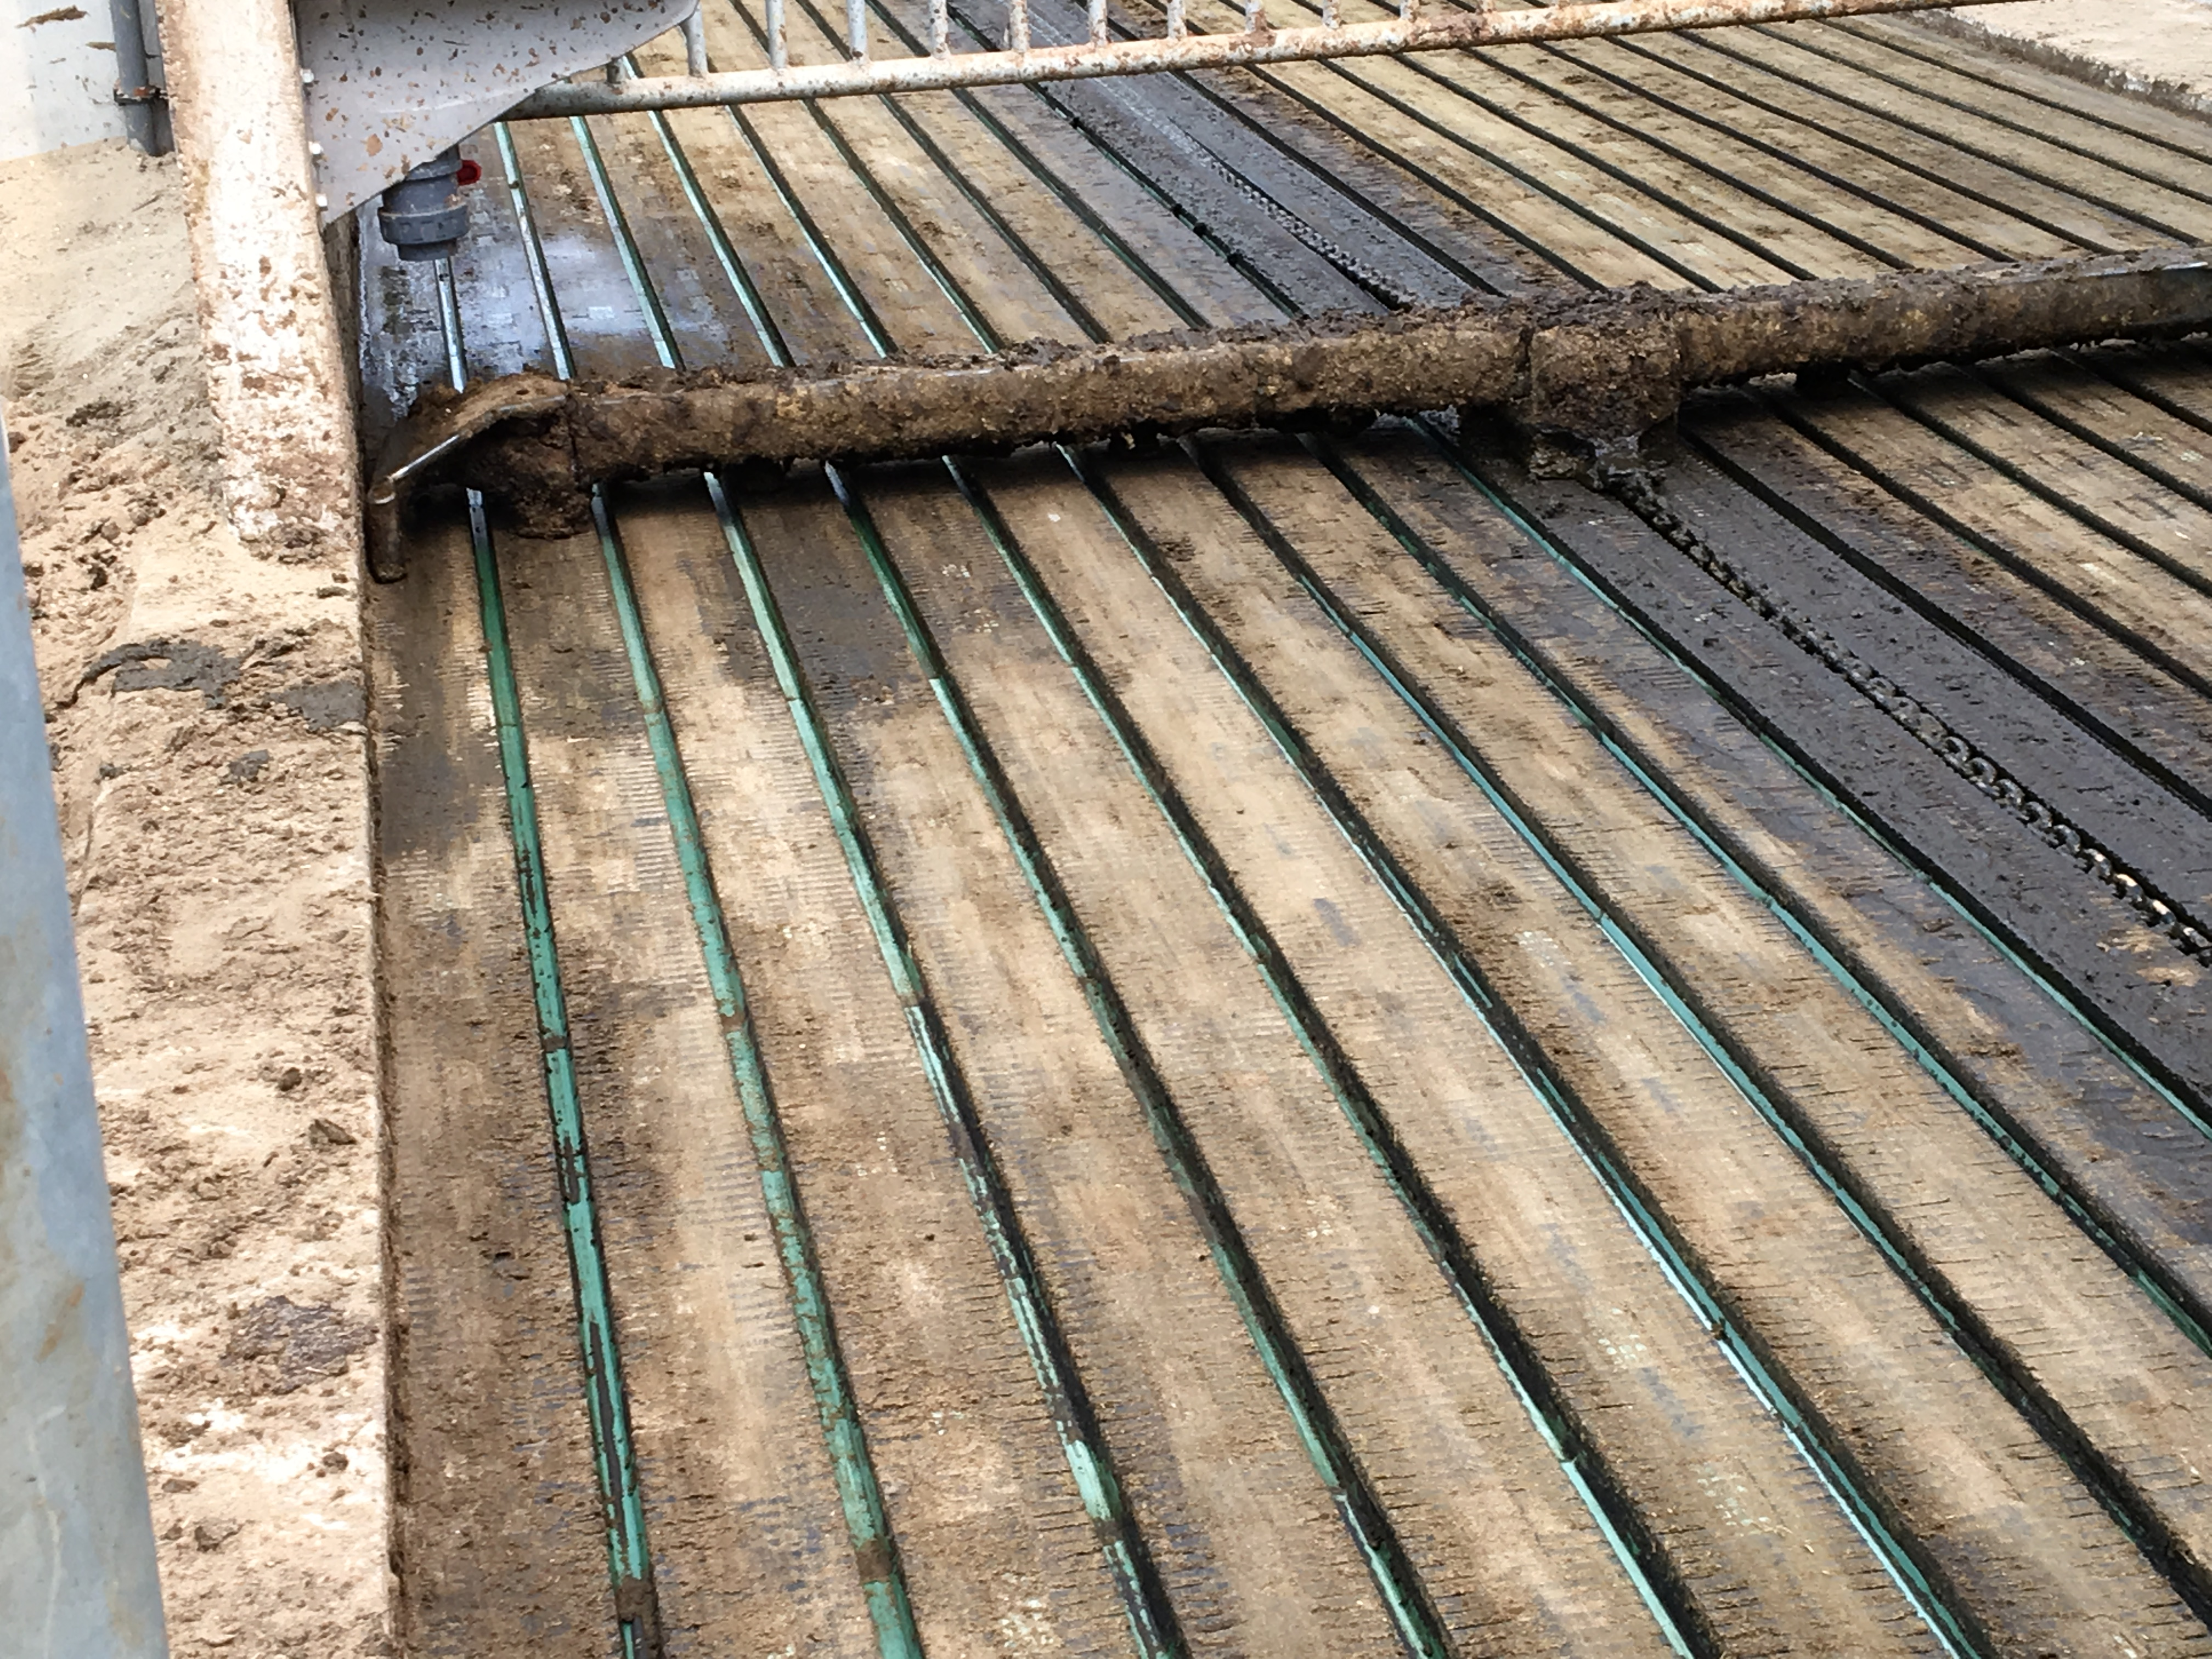 Grooved flooring system